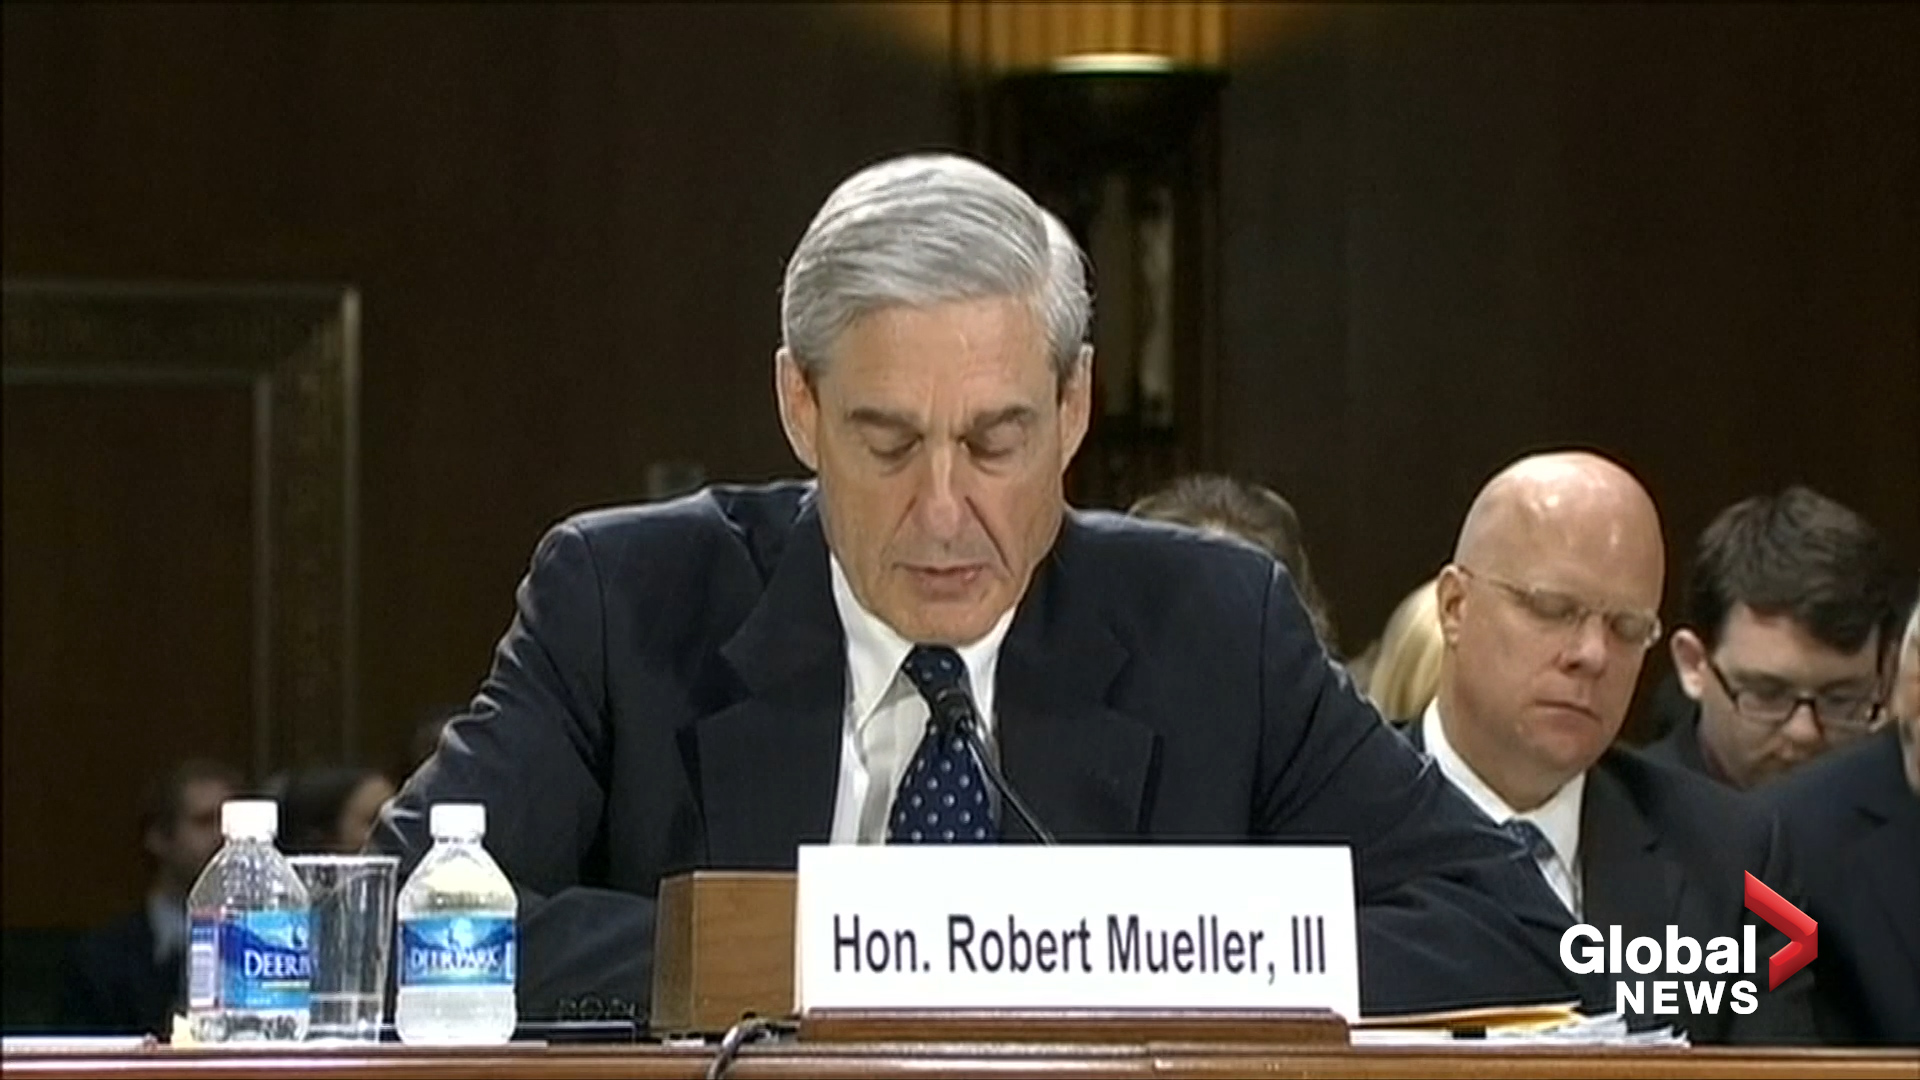 Lewandowski: Time for Mueller to End '$40 Million Witch Hunt Against This President'